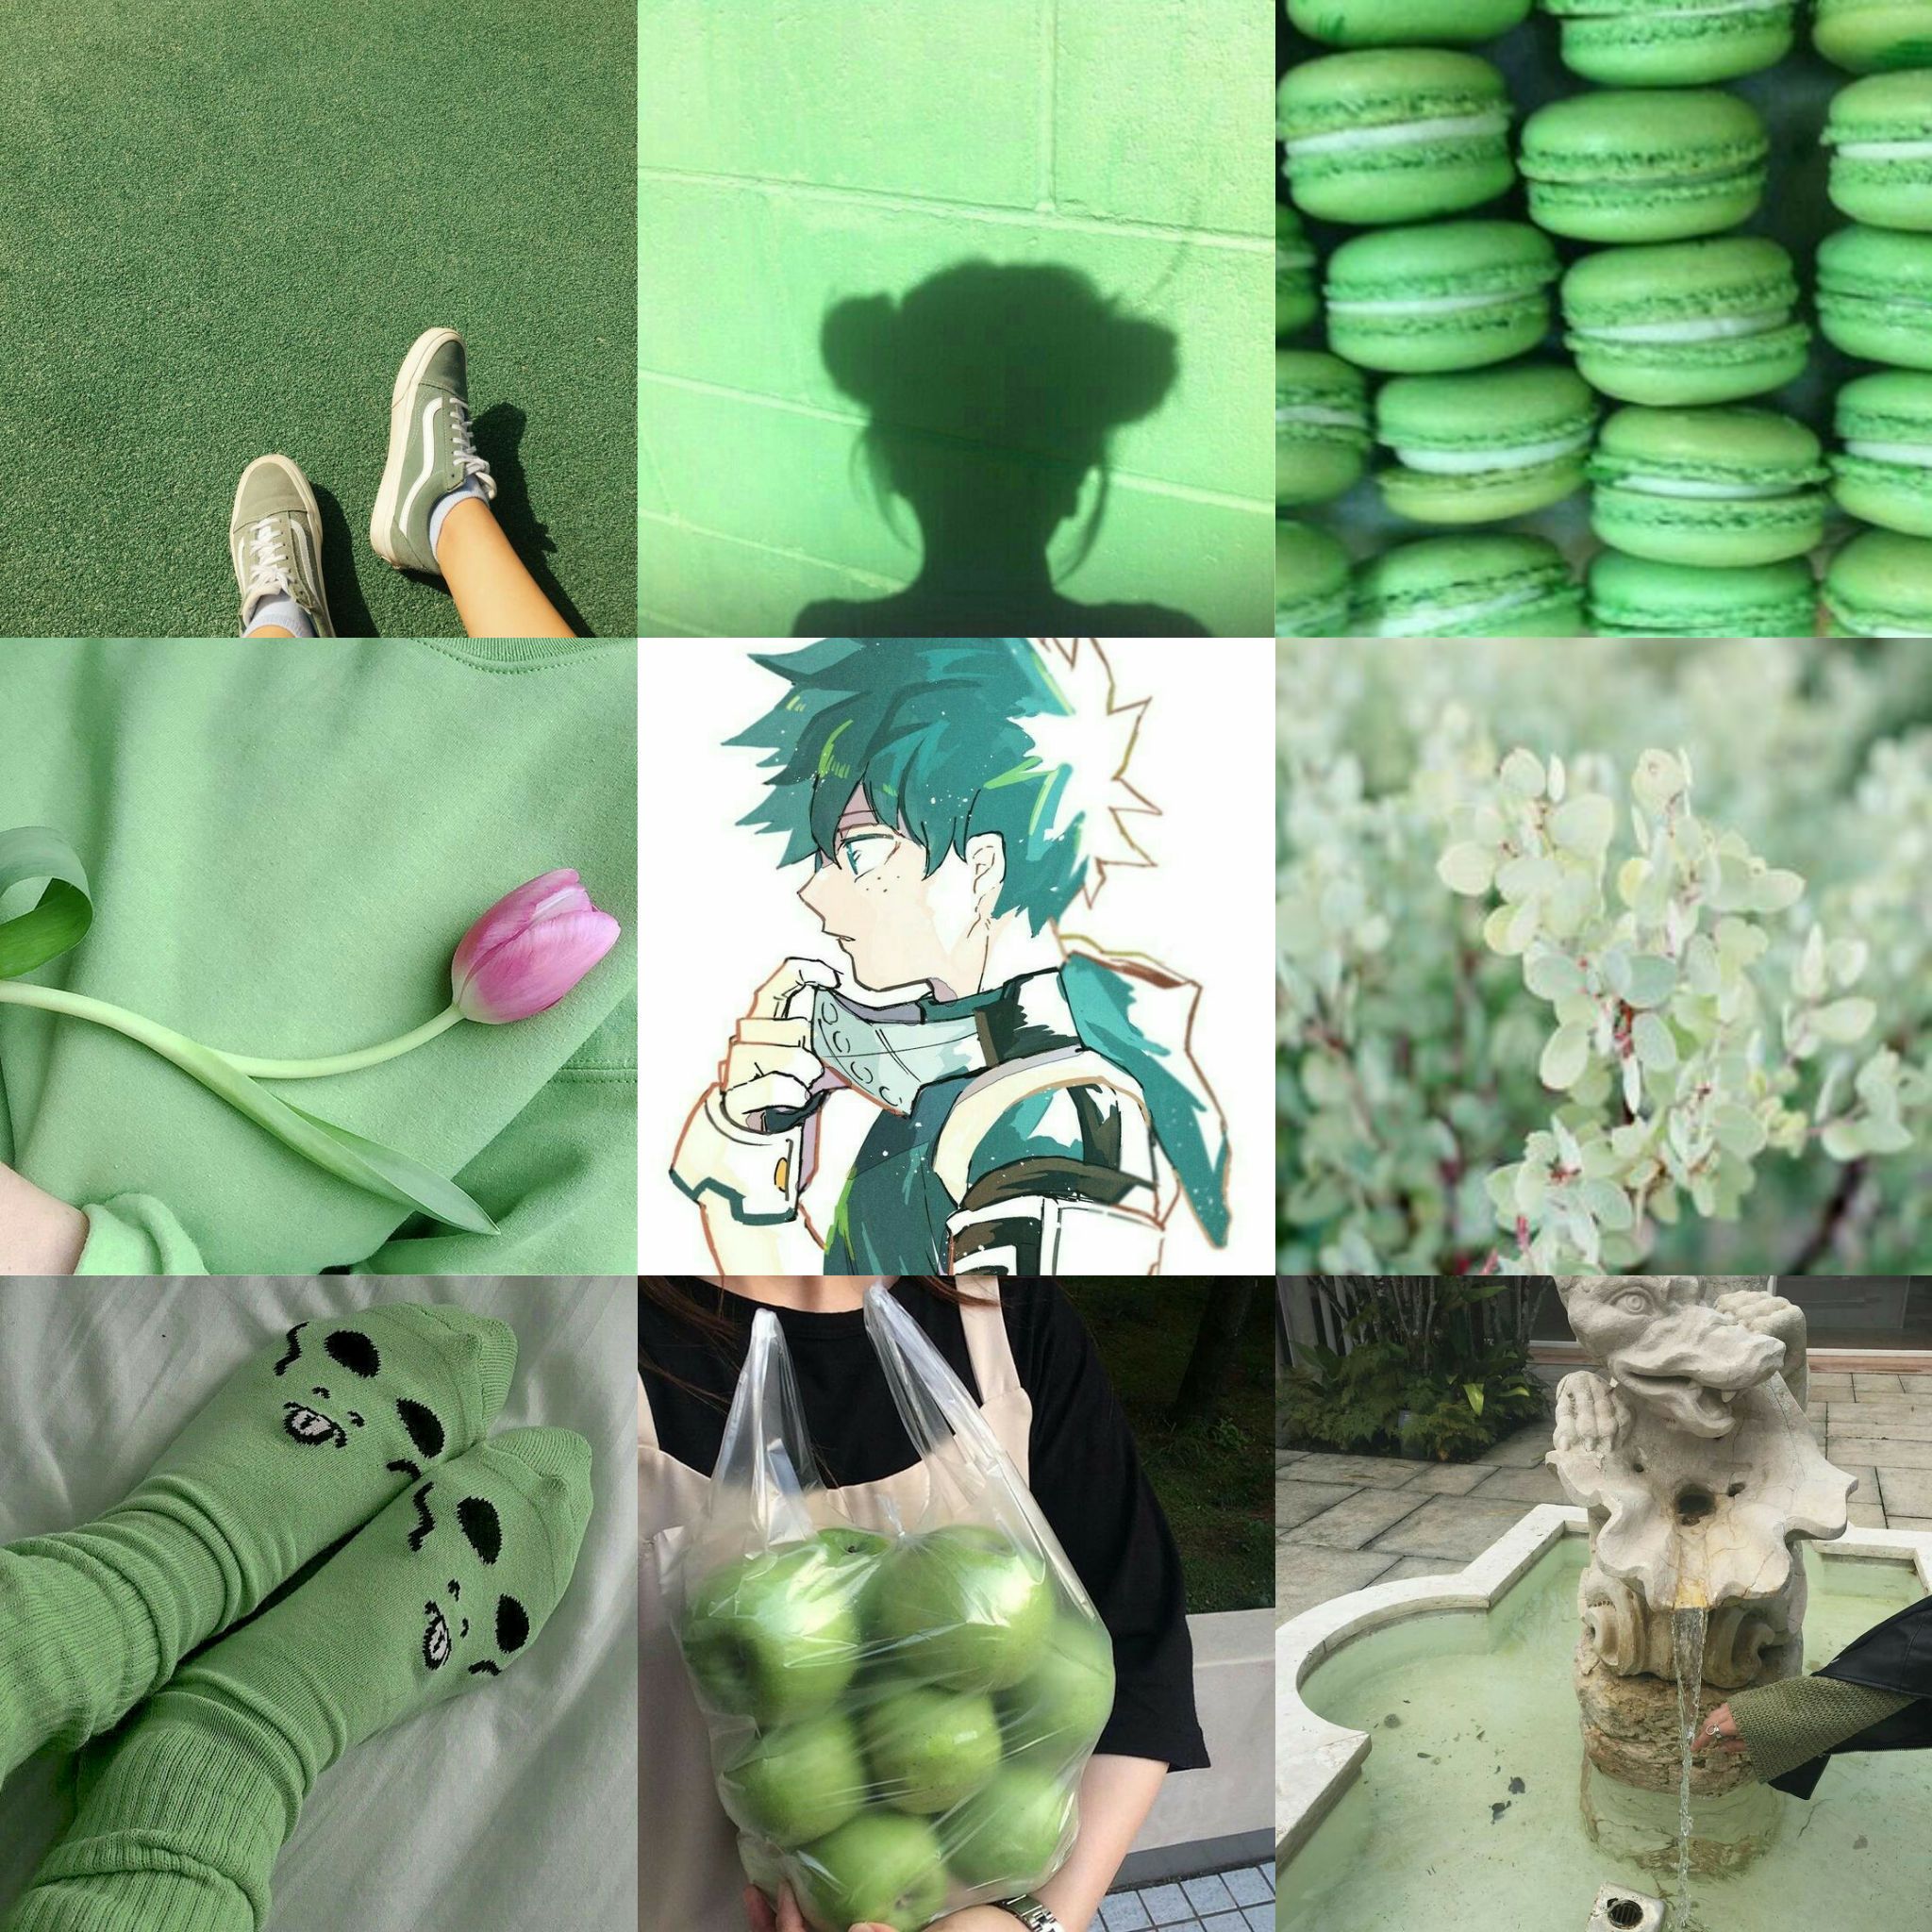 Deku Kun Wallpaper Model 2 Aesthetic Anime Dark Green Aesthetic Green Aesthetic